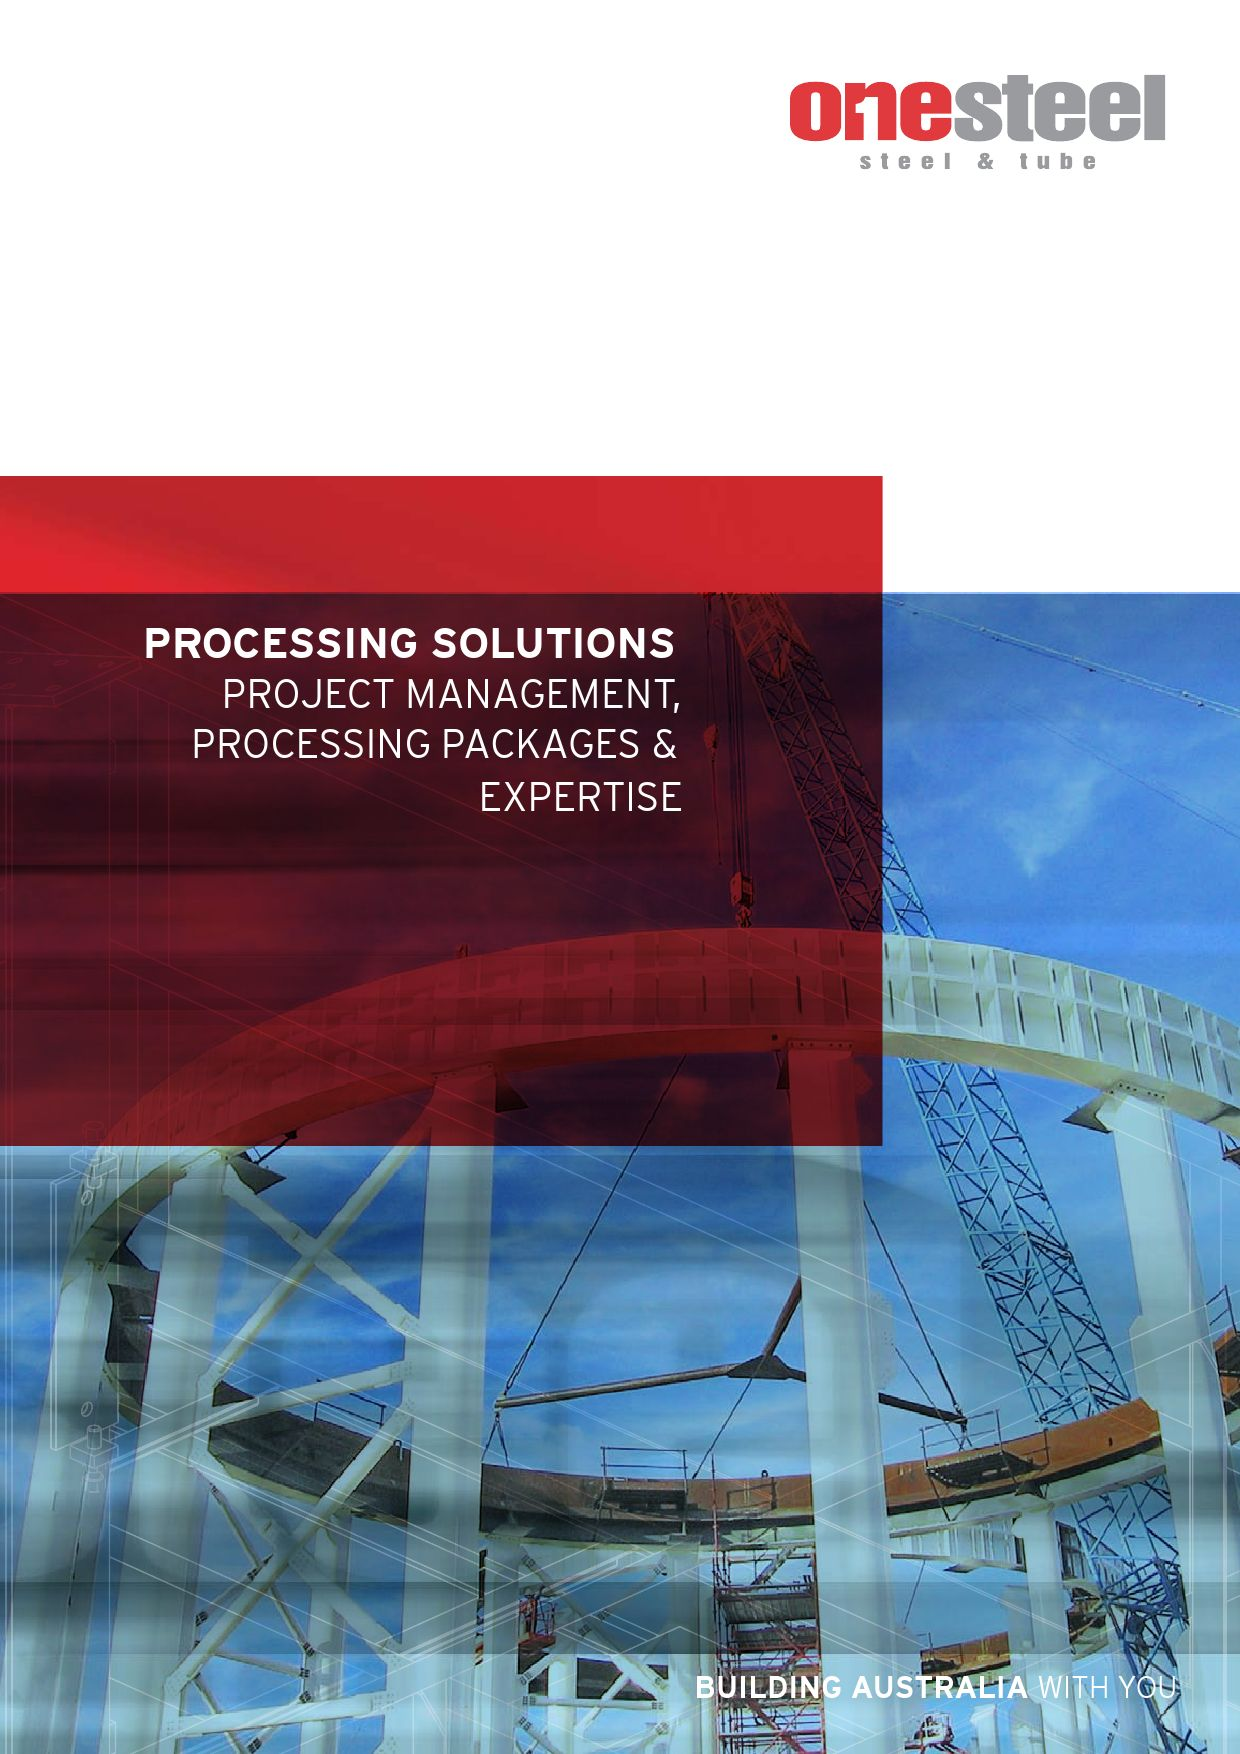 Processing Solutions by OneSteel Steel & Tube - issuu